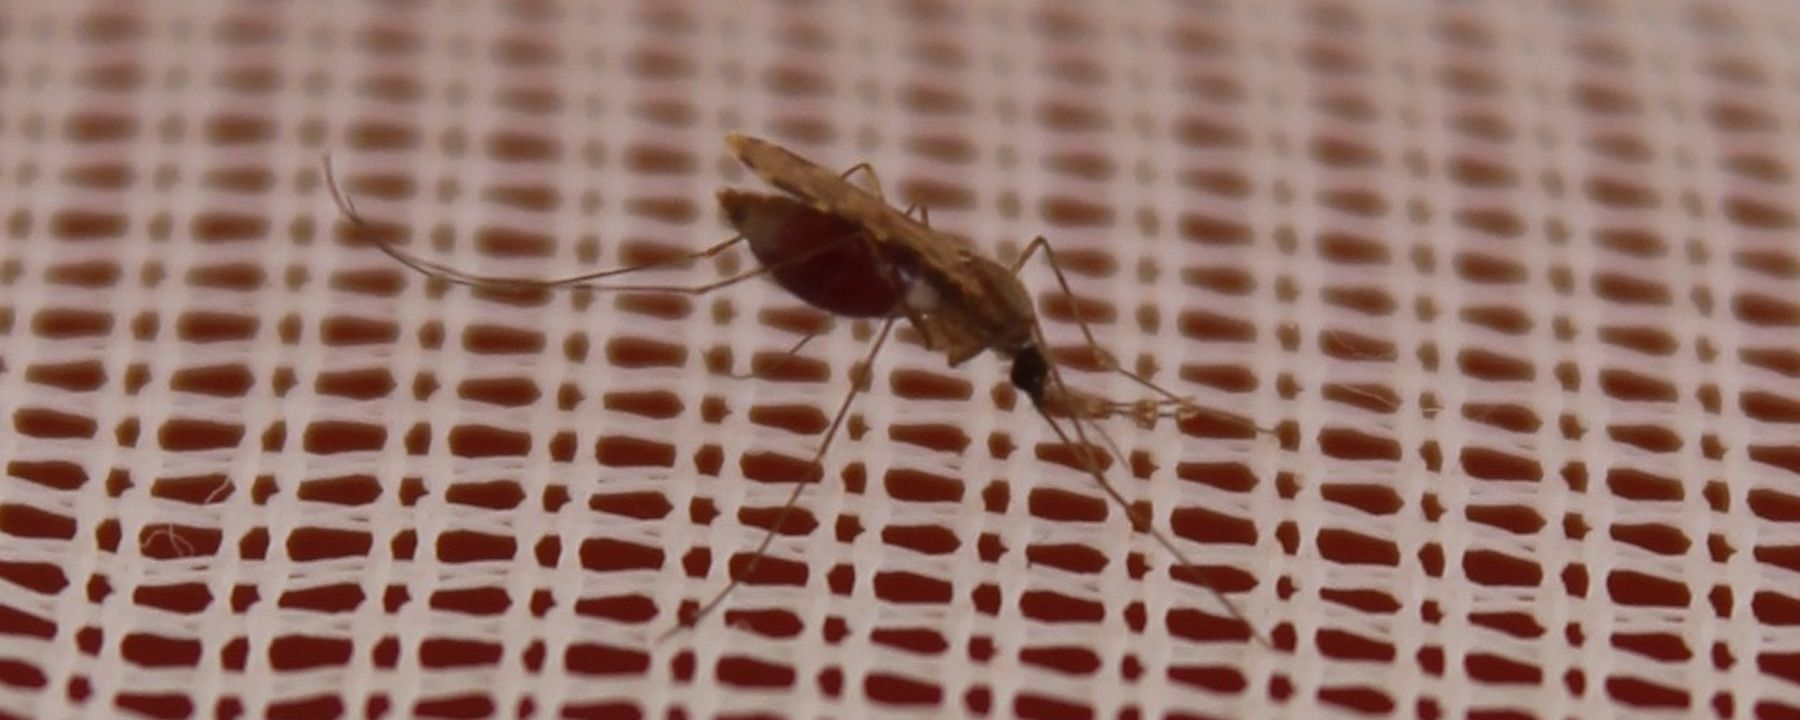 Allele Shows Pyrethroid Resistance's Spread in African Mosquitos